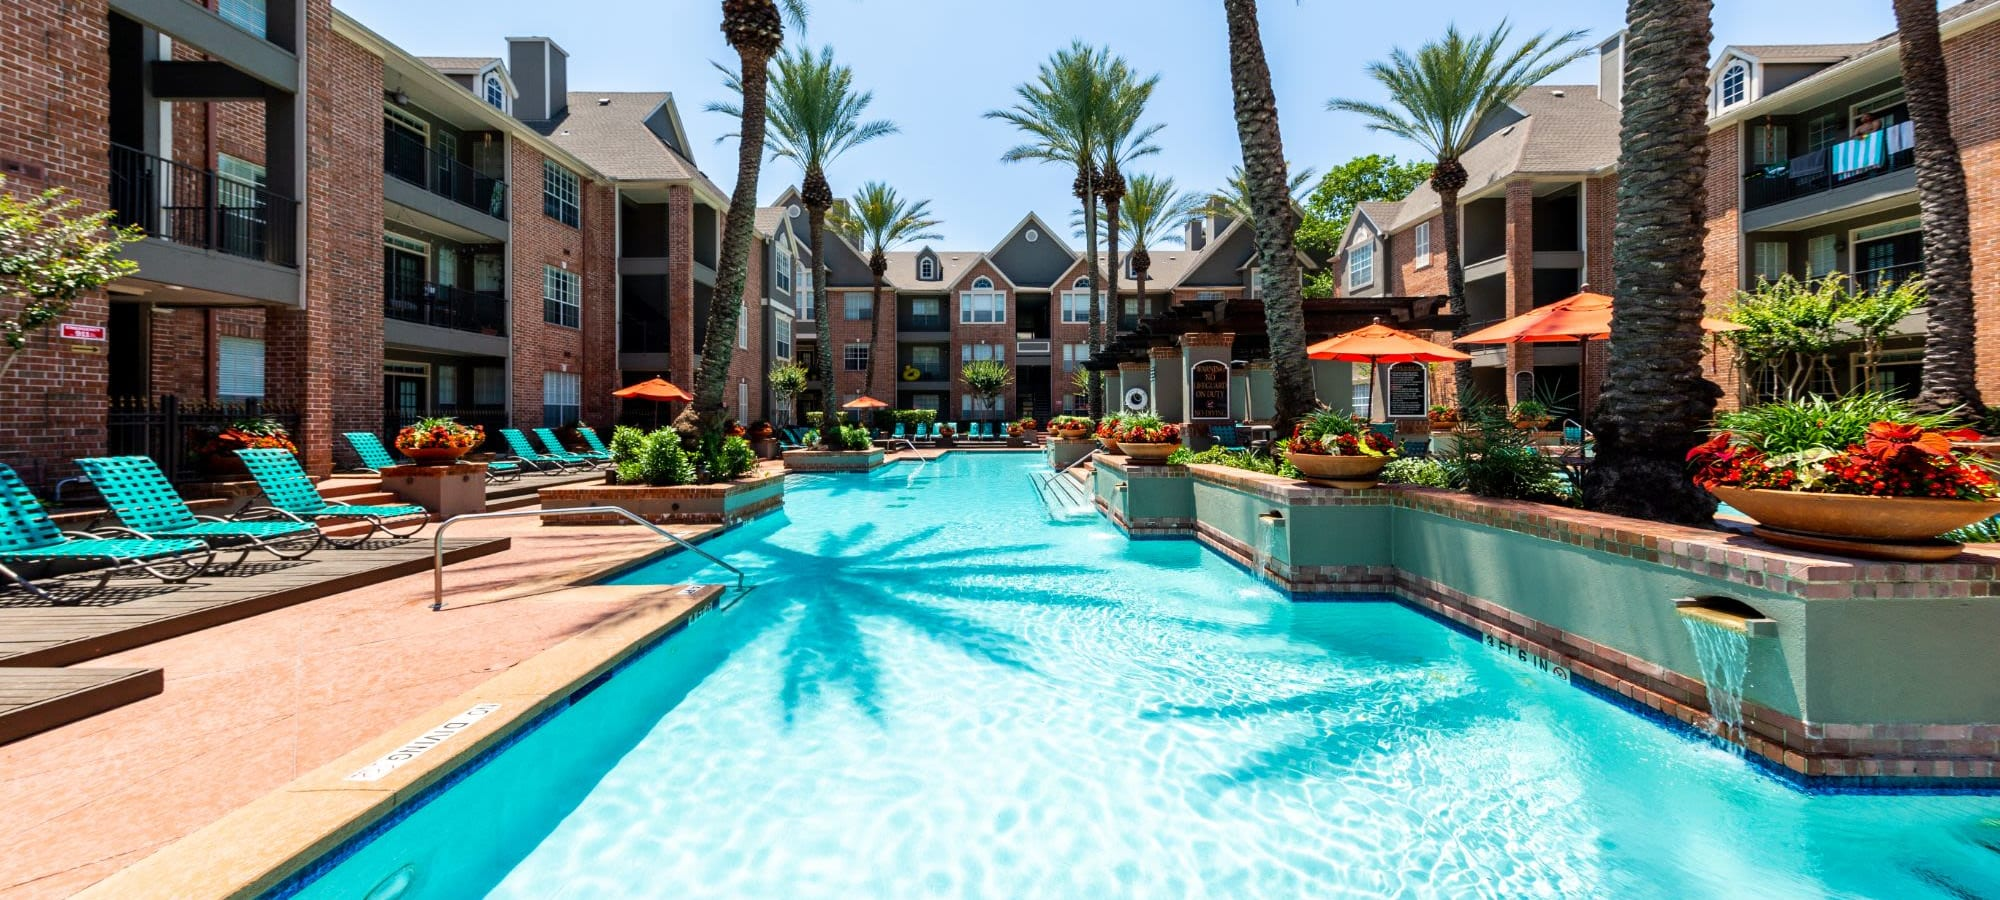 Amenities at Marquis on Pin Oak in Houston, Texas